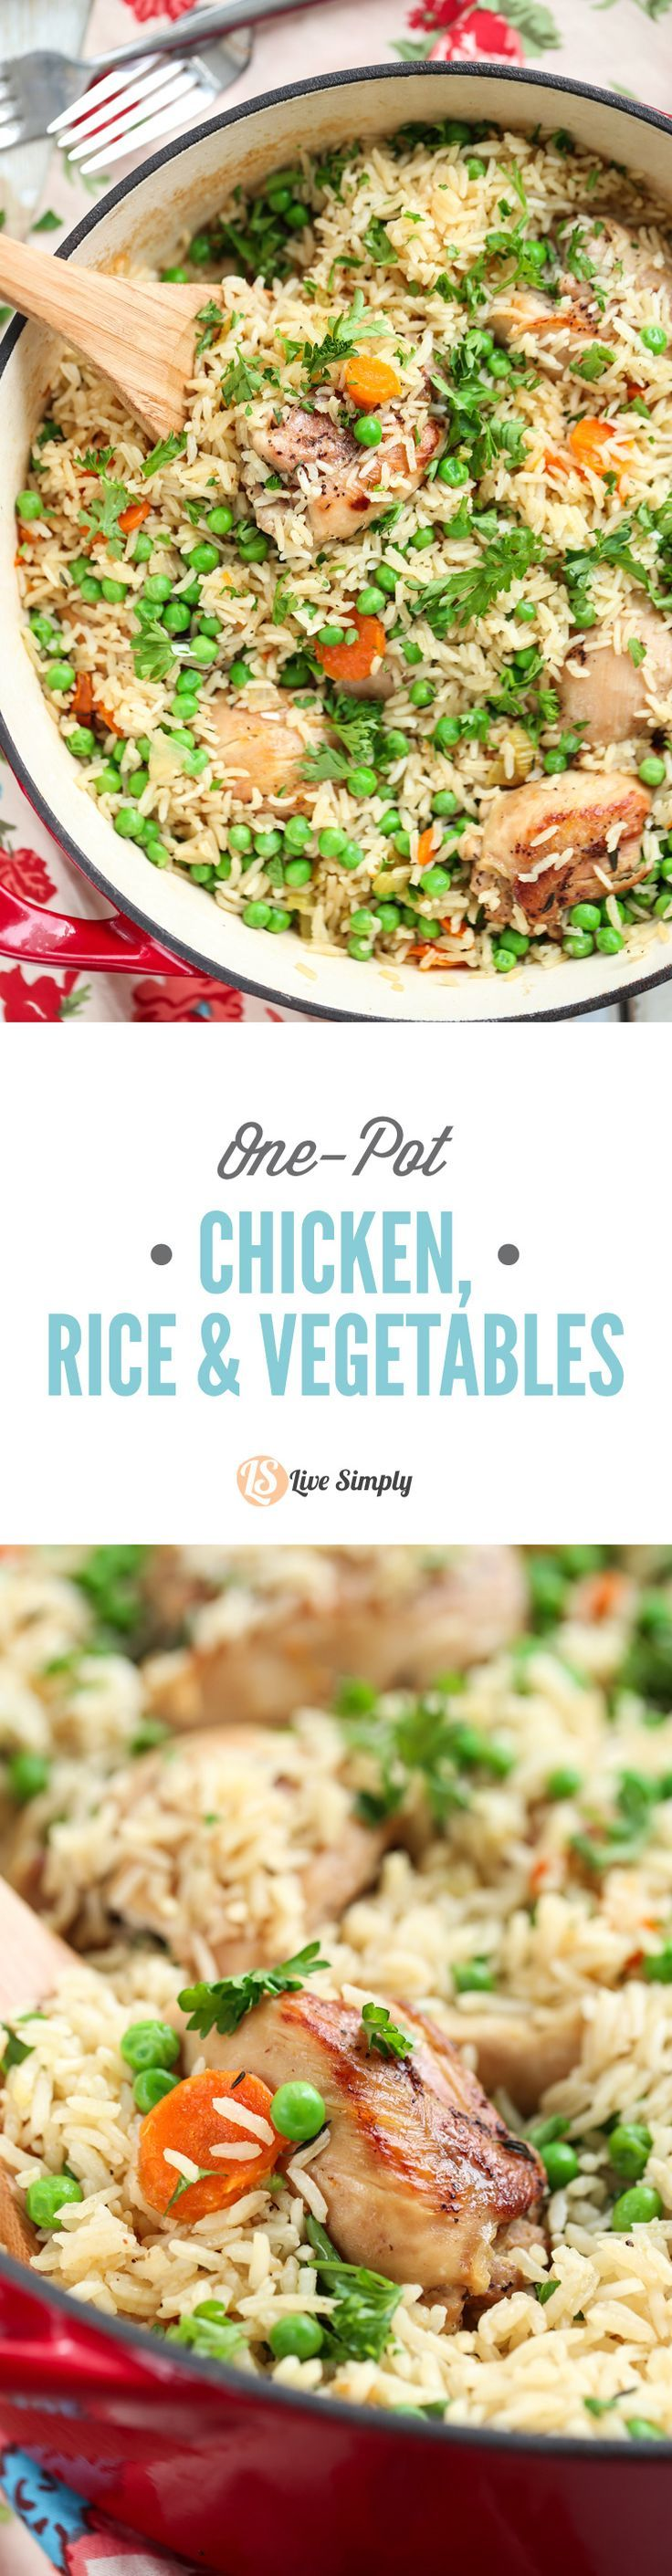 One pot chicken rice and vegetables recipe real foods meals dishes forumfinder Image collections